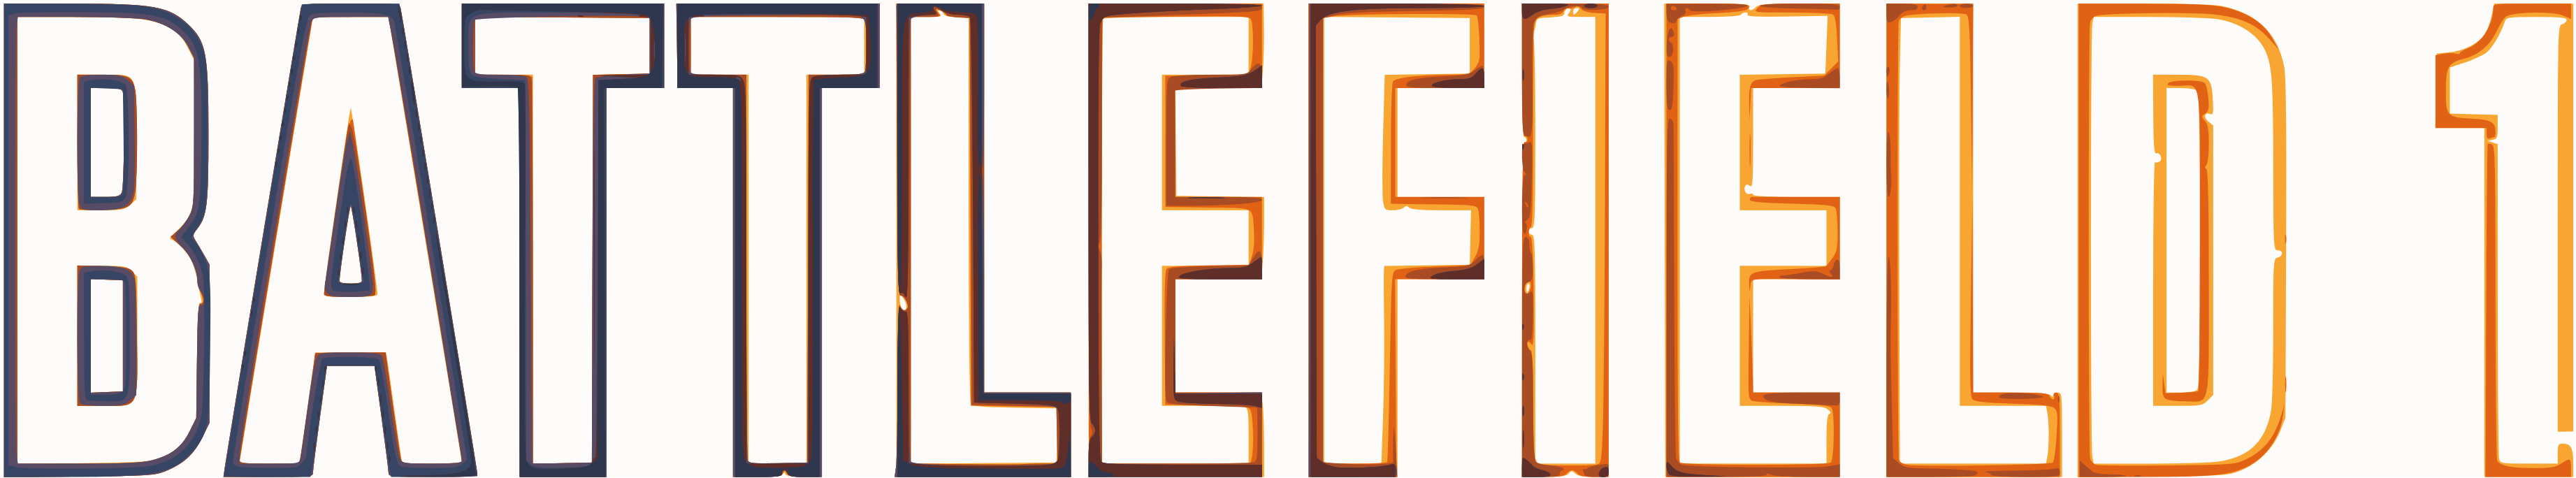 battlefield-1-logo_text